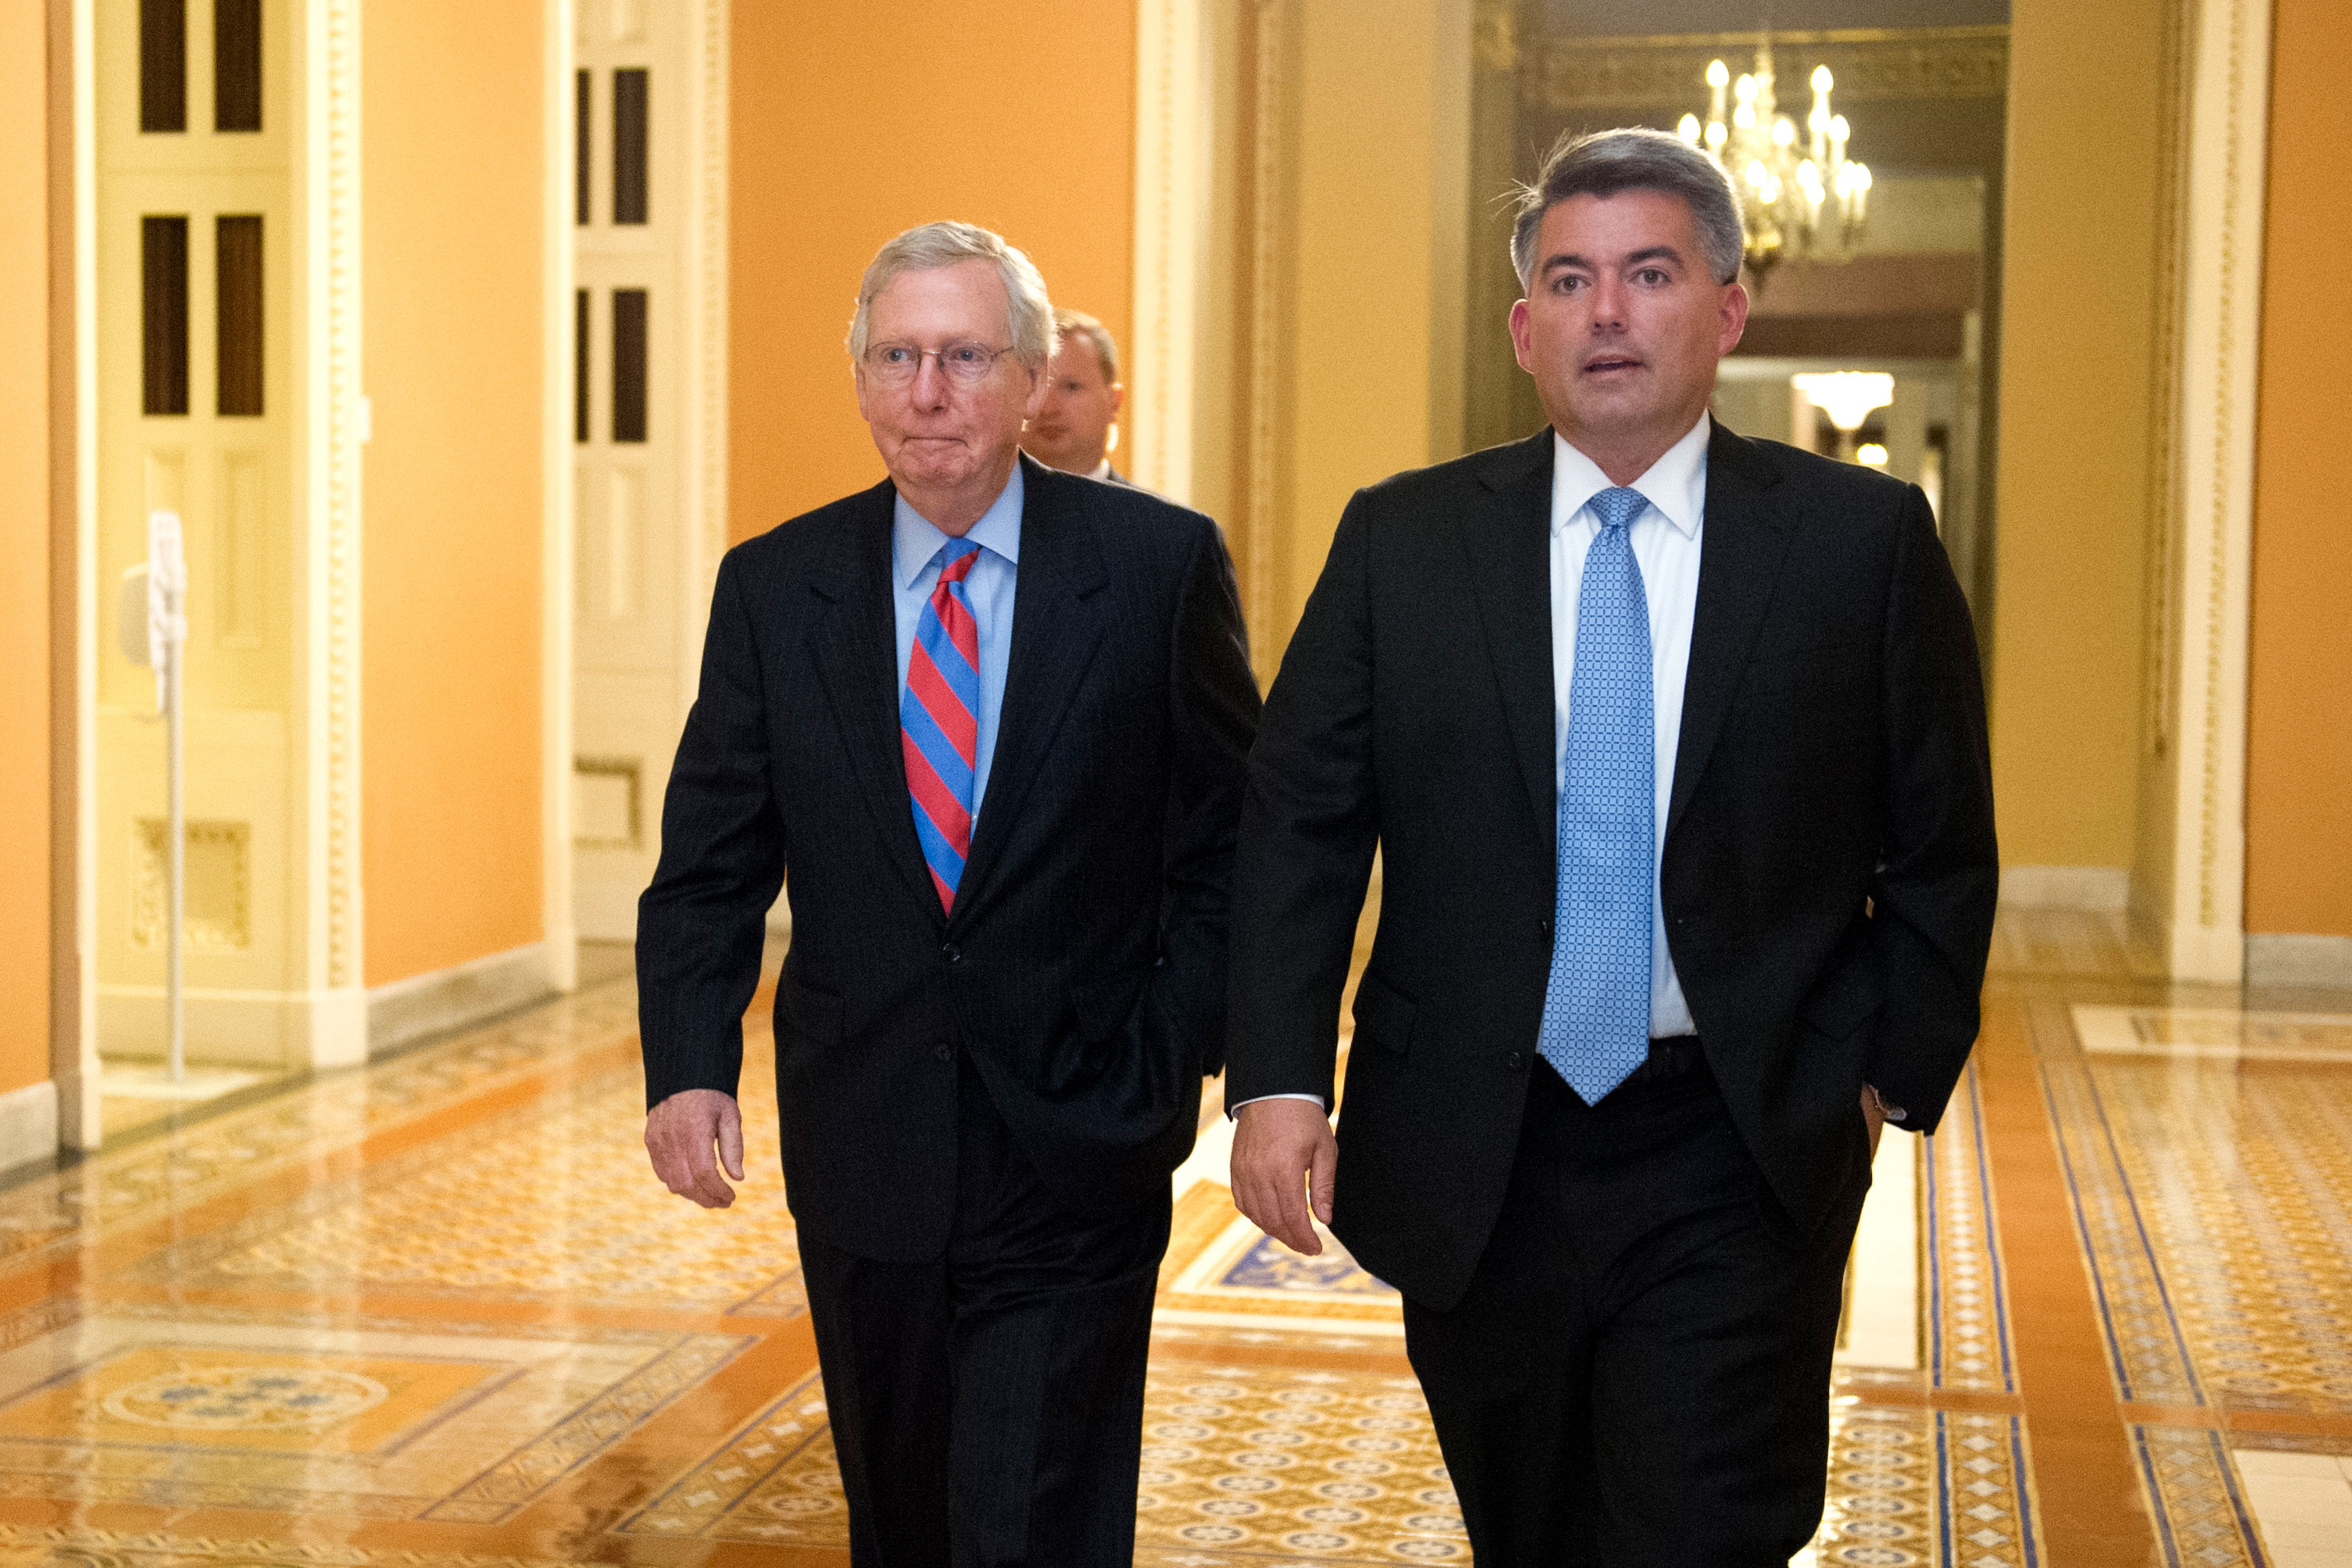 Photo: Senate Health Care Votes | Mitch McConnell And Cory Gardner - AP